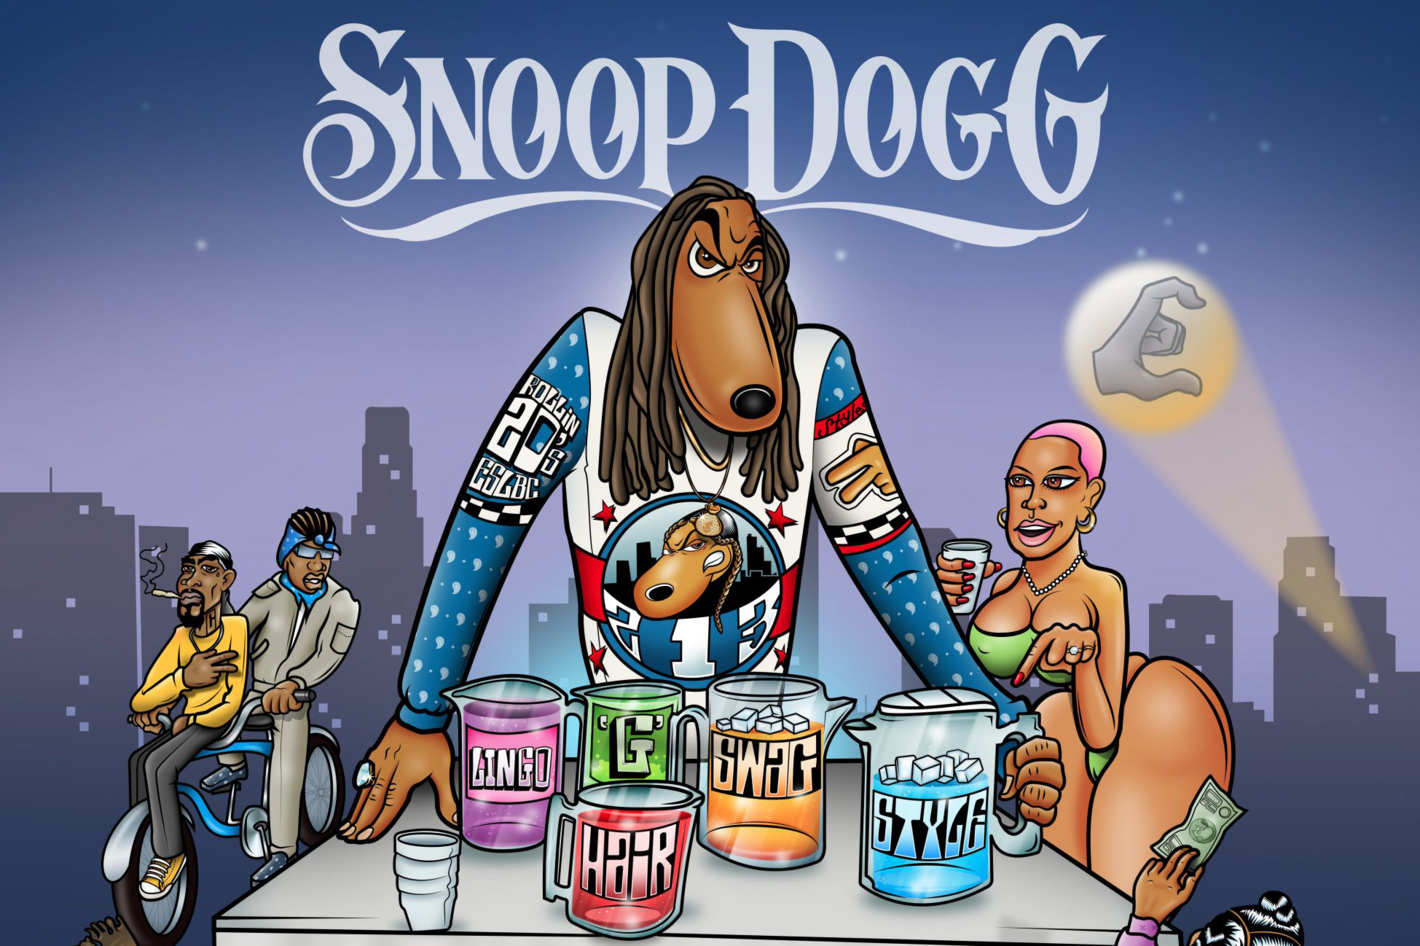 Listen to a Track From Snoop Dogg's New Album, Coolaid, Which Drops